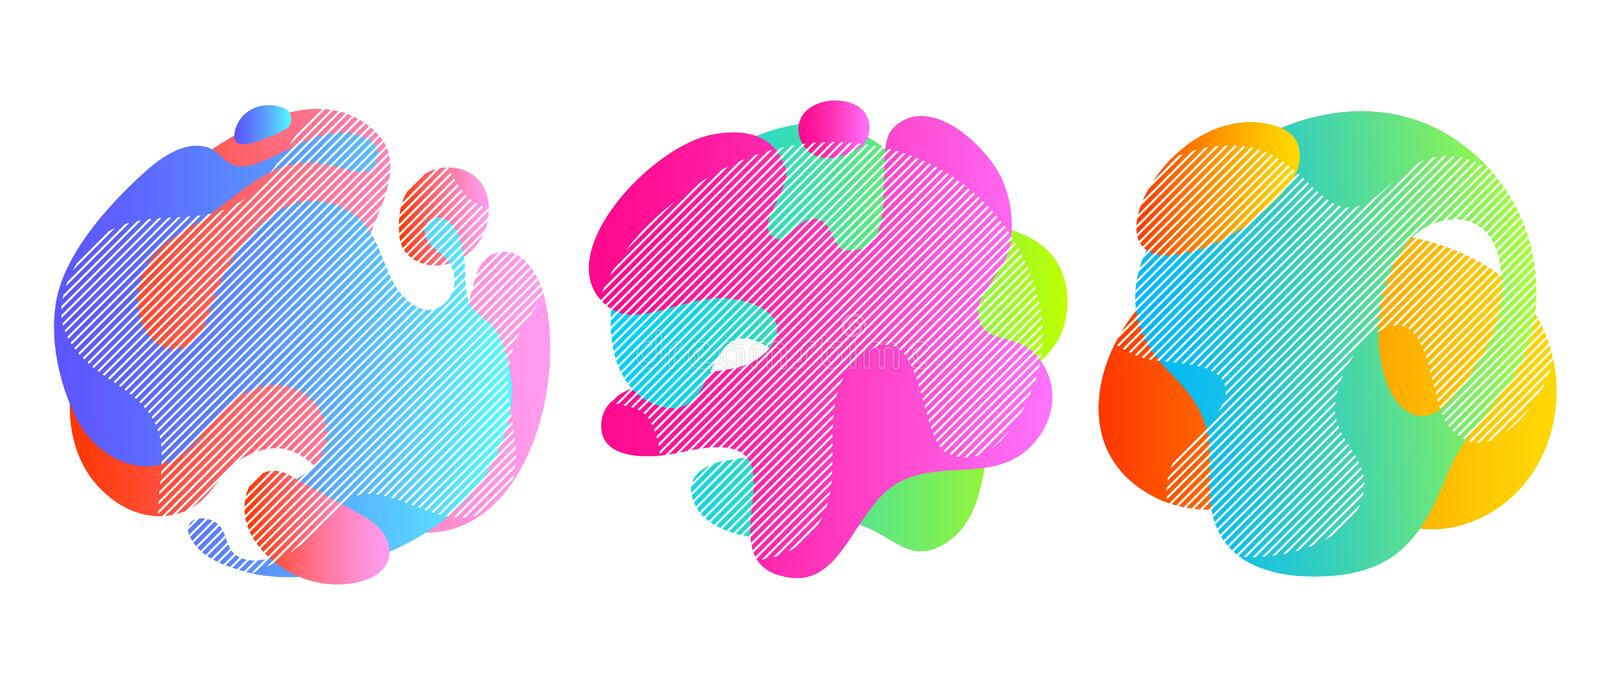 Colorful liquid shapes set. Abstract fluid blobs. Colorful liquid shapes set. Abstract fluid blobs background vector illustration